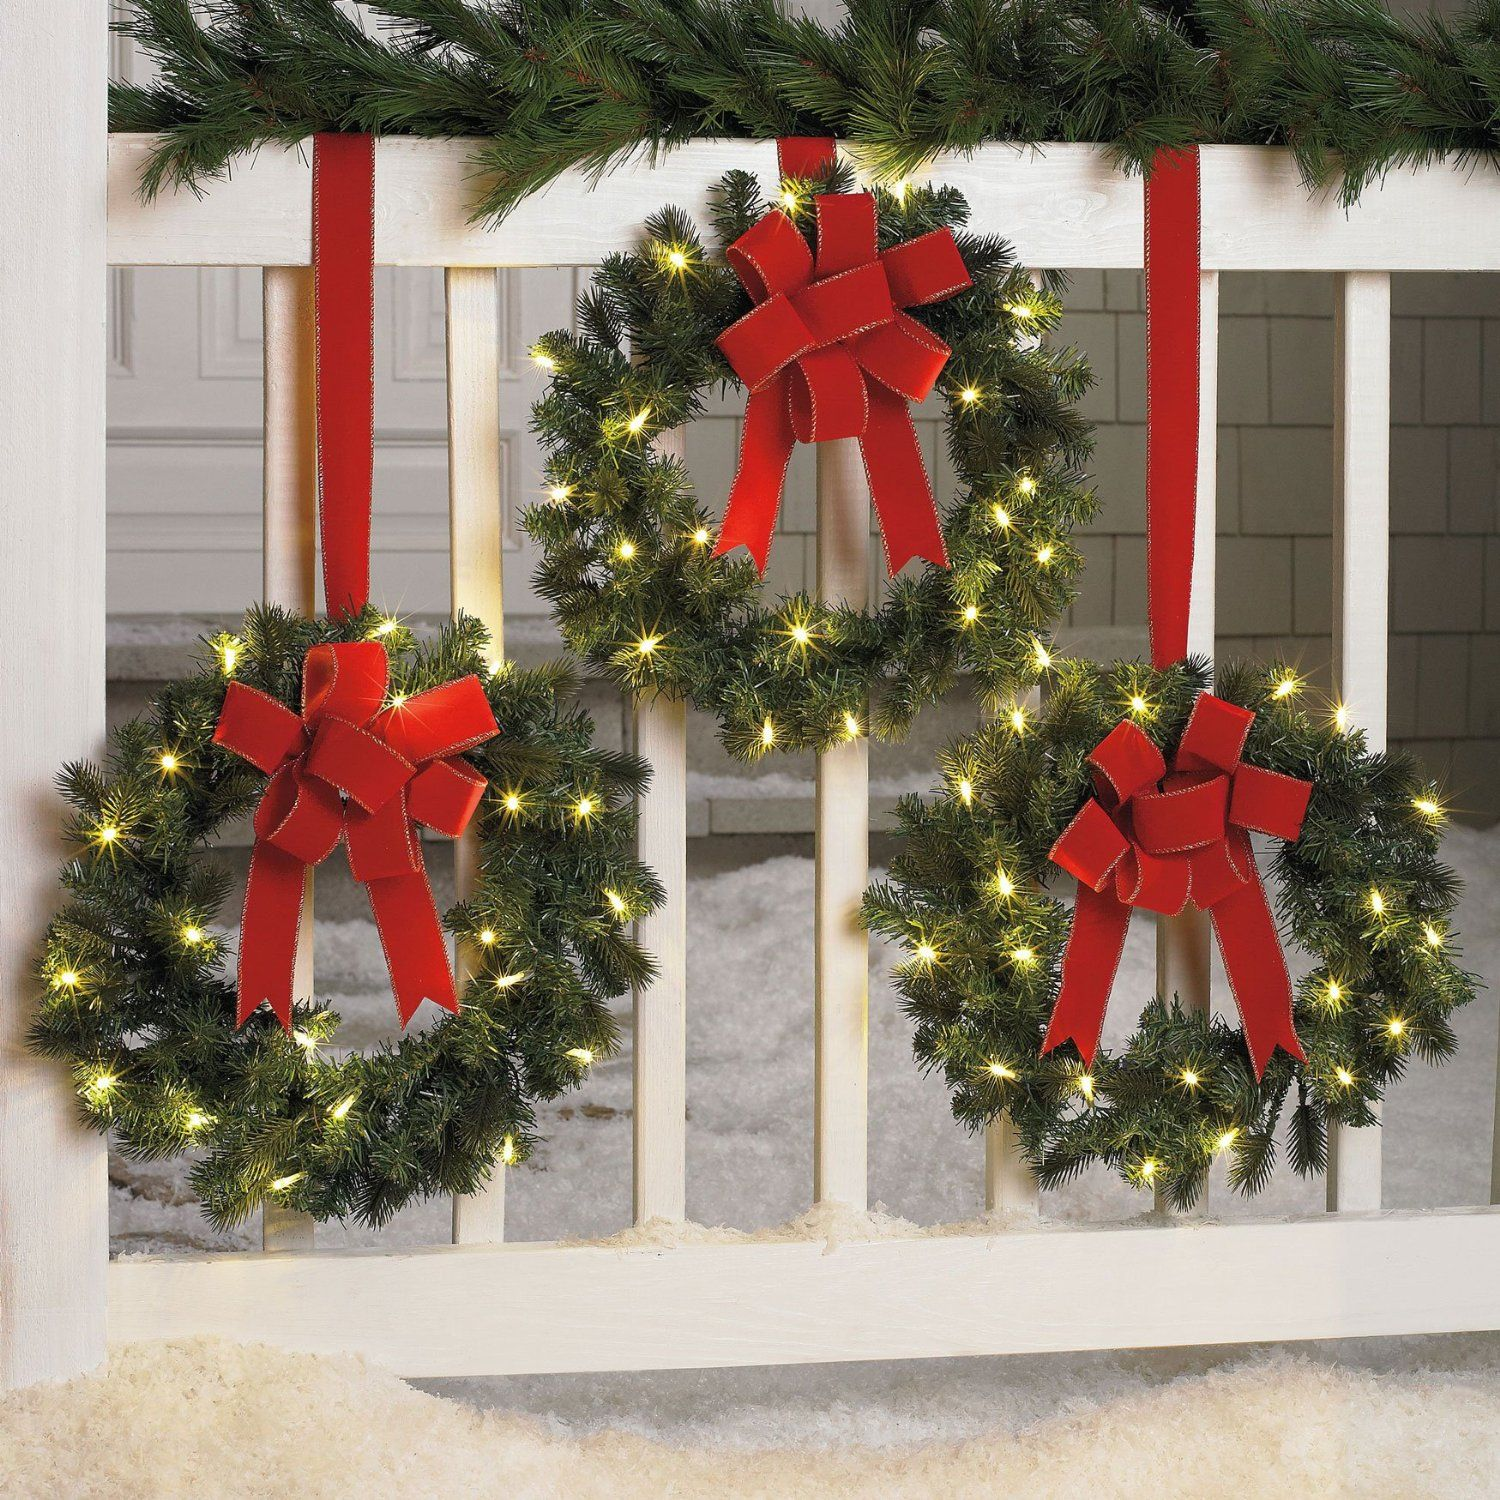 Brylanehome Set Of 3 Cordless Outdoor Christmas Things Jpg 1 500 1 500 Pixels Christmas Wreaths With Lights Christmas Wreaths Outdoor Christmas Lights